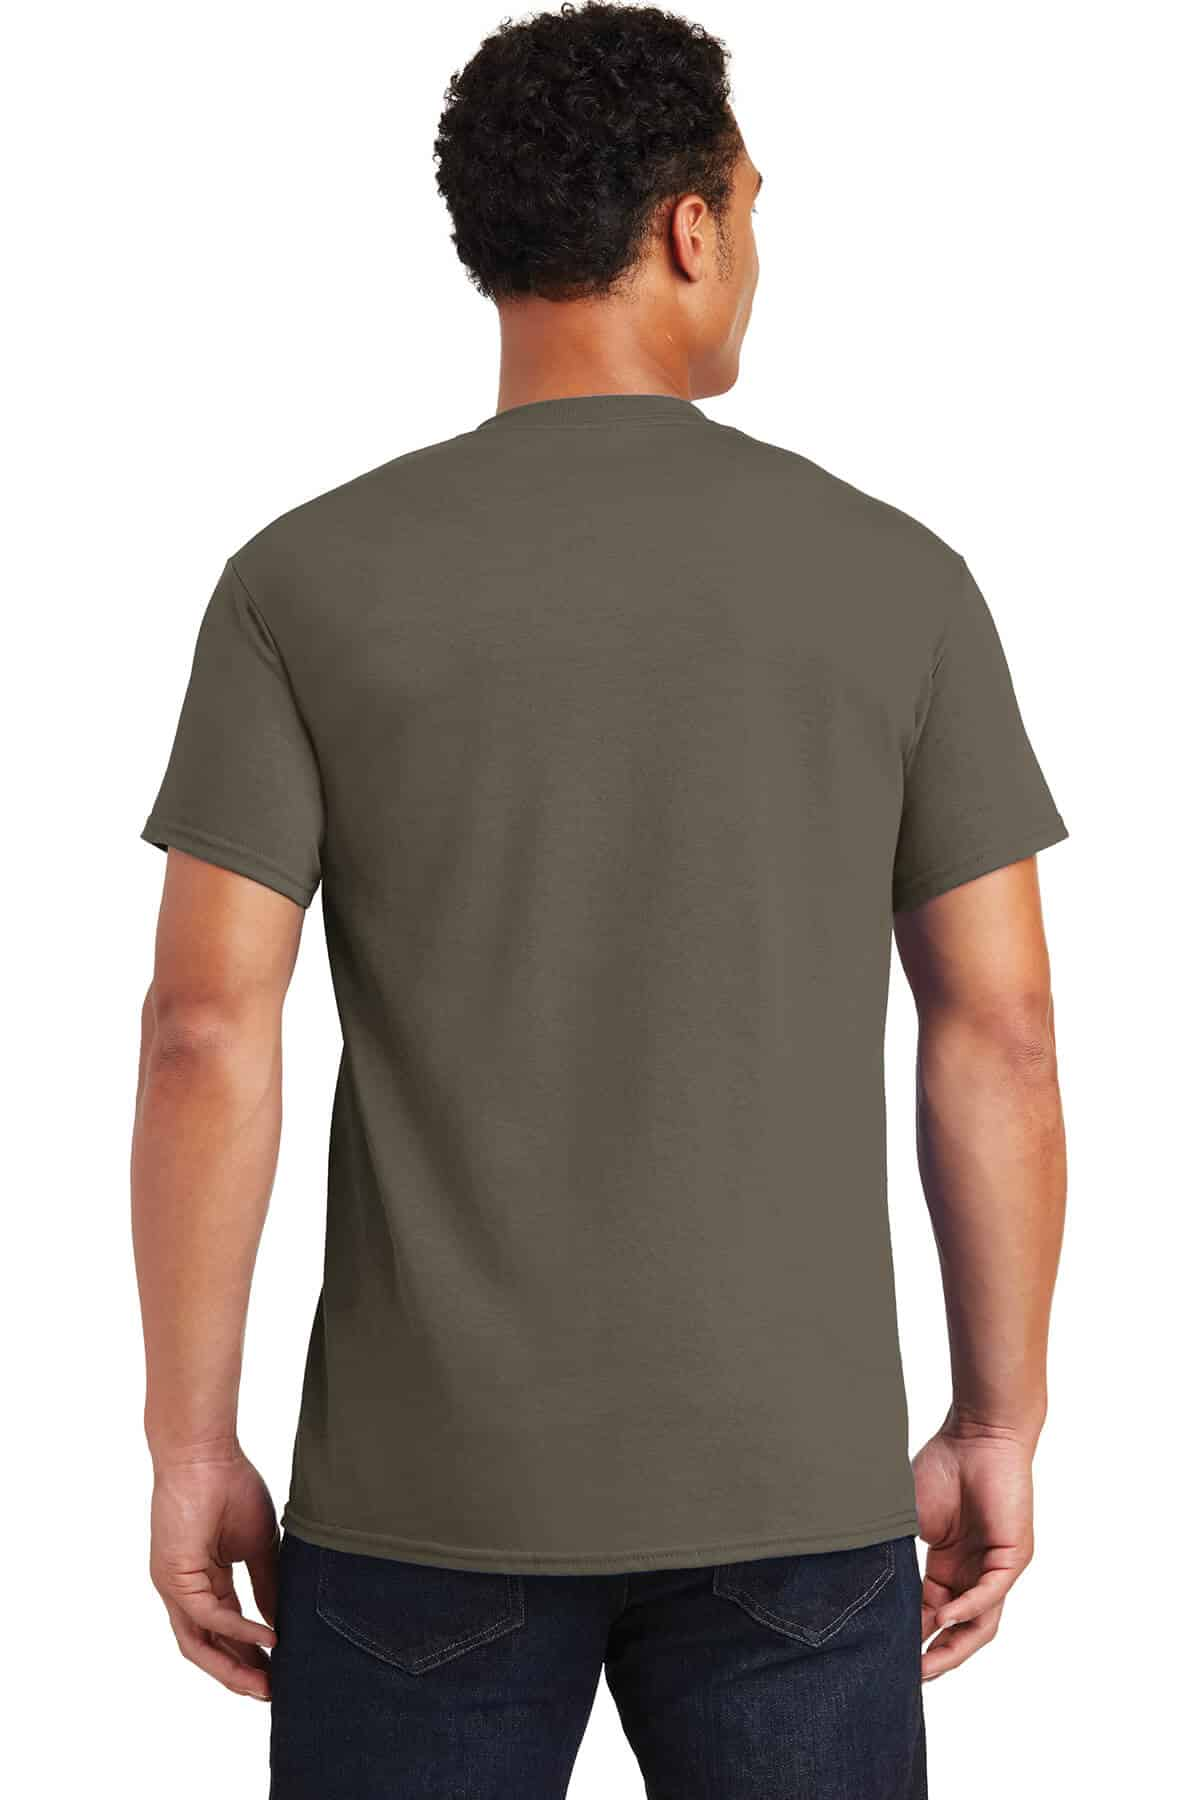 Prairie Dust Teeshirt Back